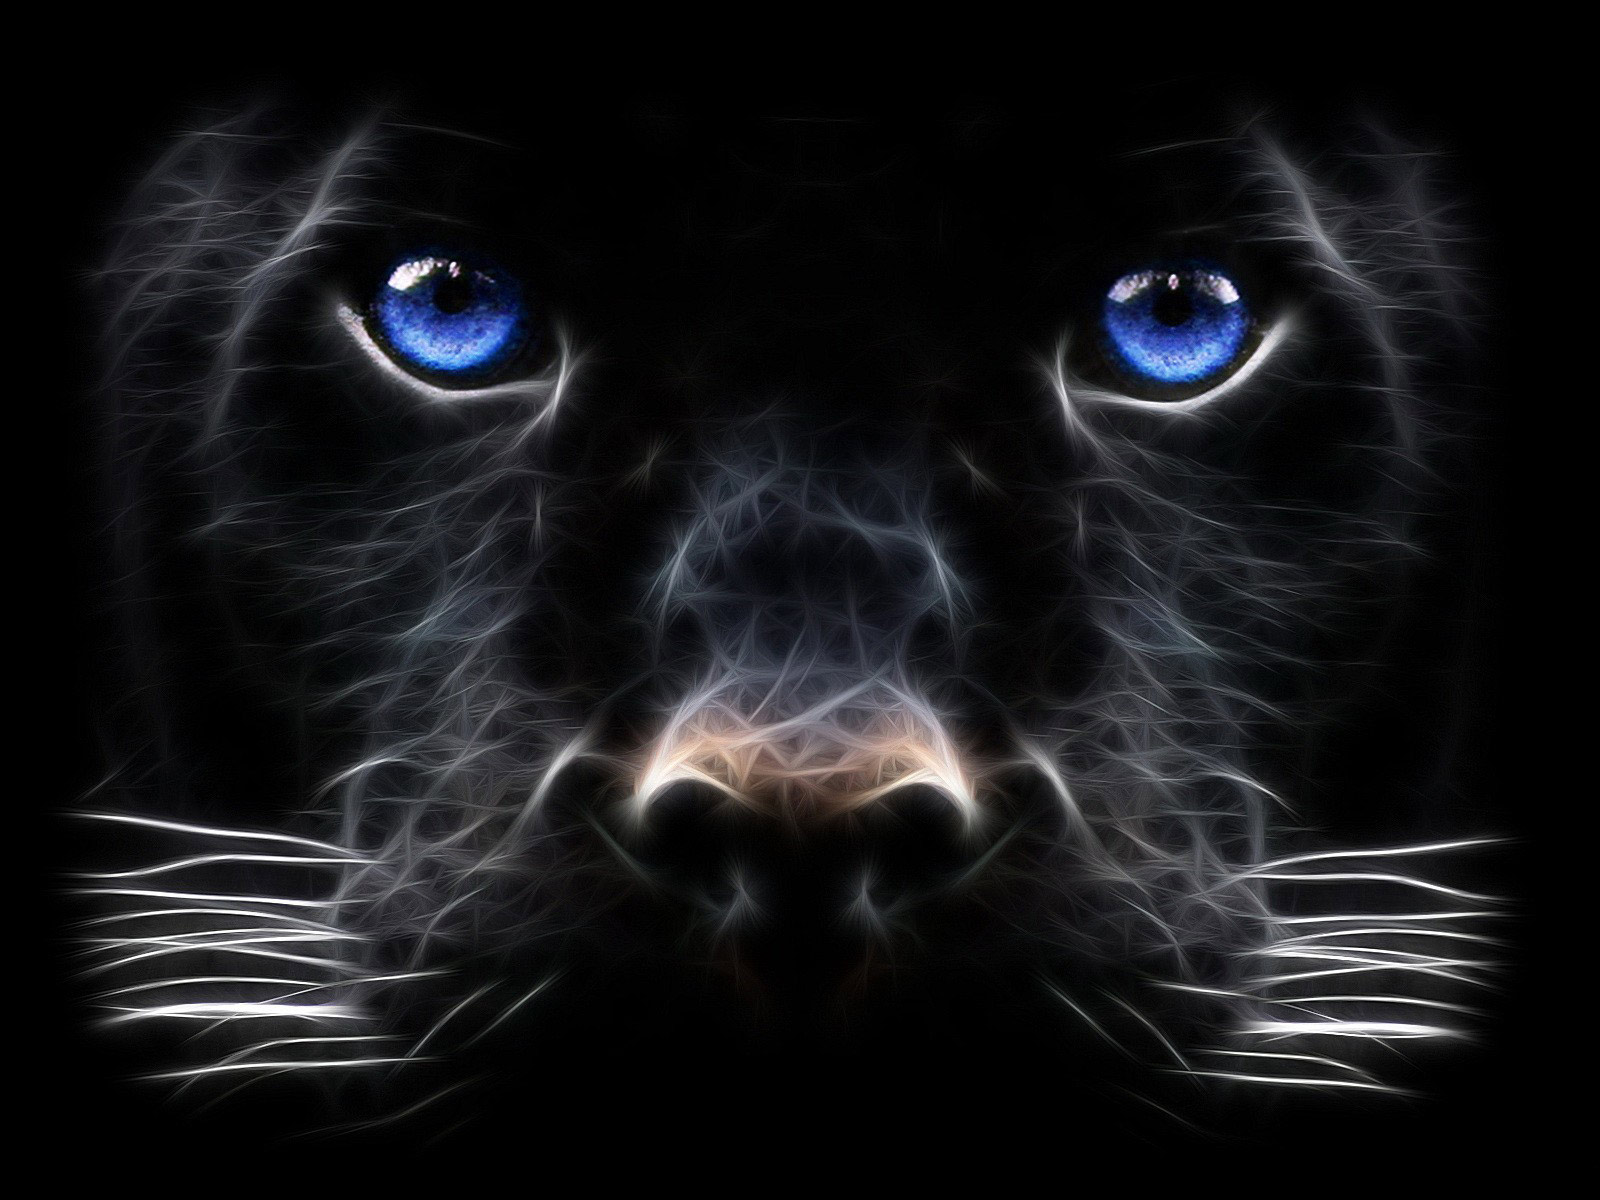 http://3.bp.blogspot.com/_R_GuOlmaOKA/TJKOAcZVToI/AAAAAAAAARg/QtIlUT-rZRs/s1600/Backgrounds_Windows_7_-_Black_Panther_Big_cat.jpg